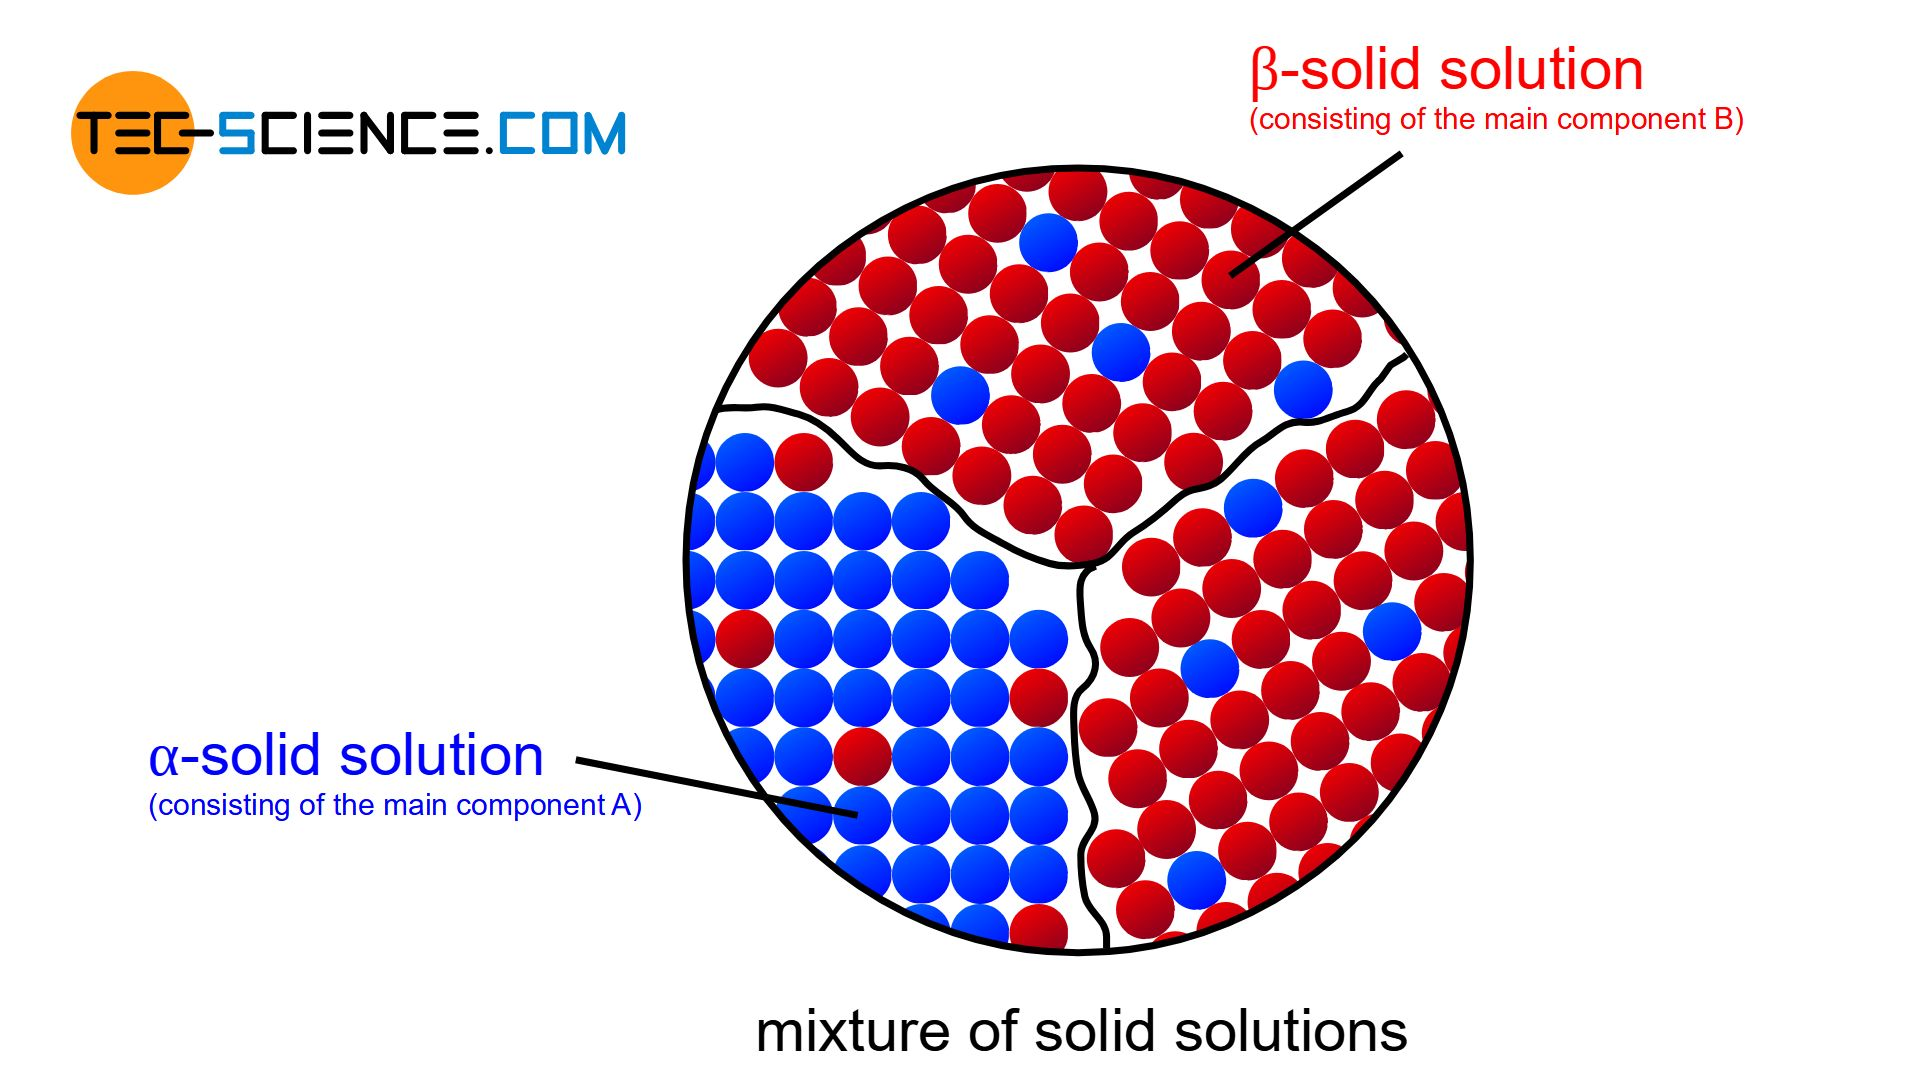 Schematic structure of a partial solubility of the two components in the solid state